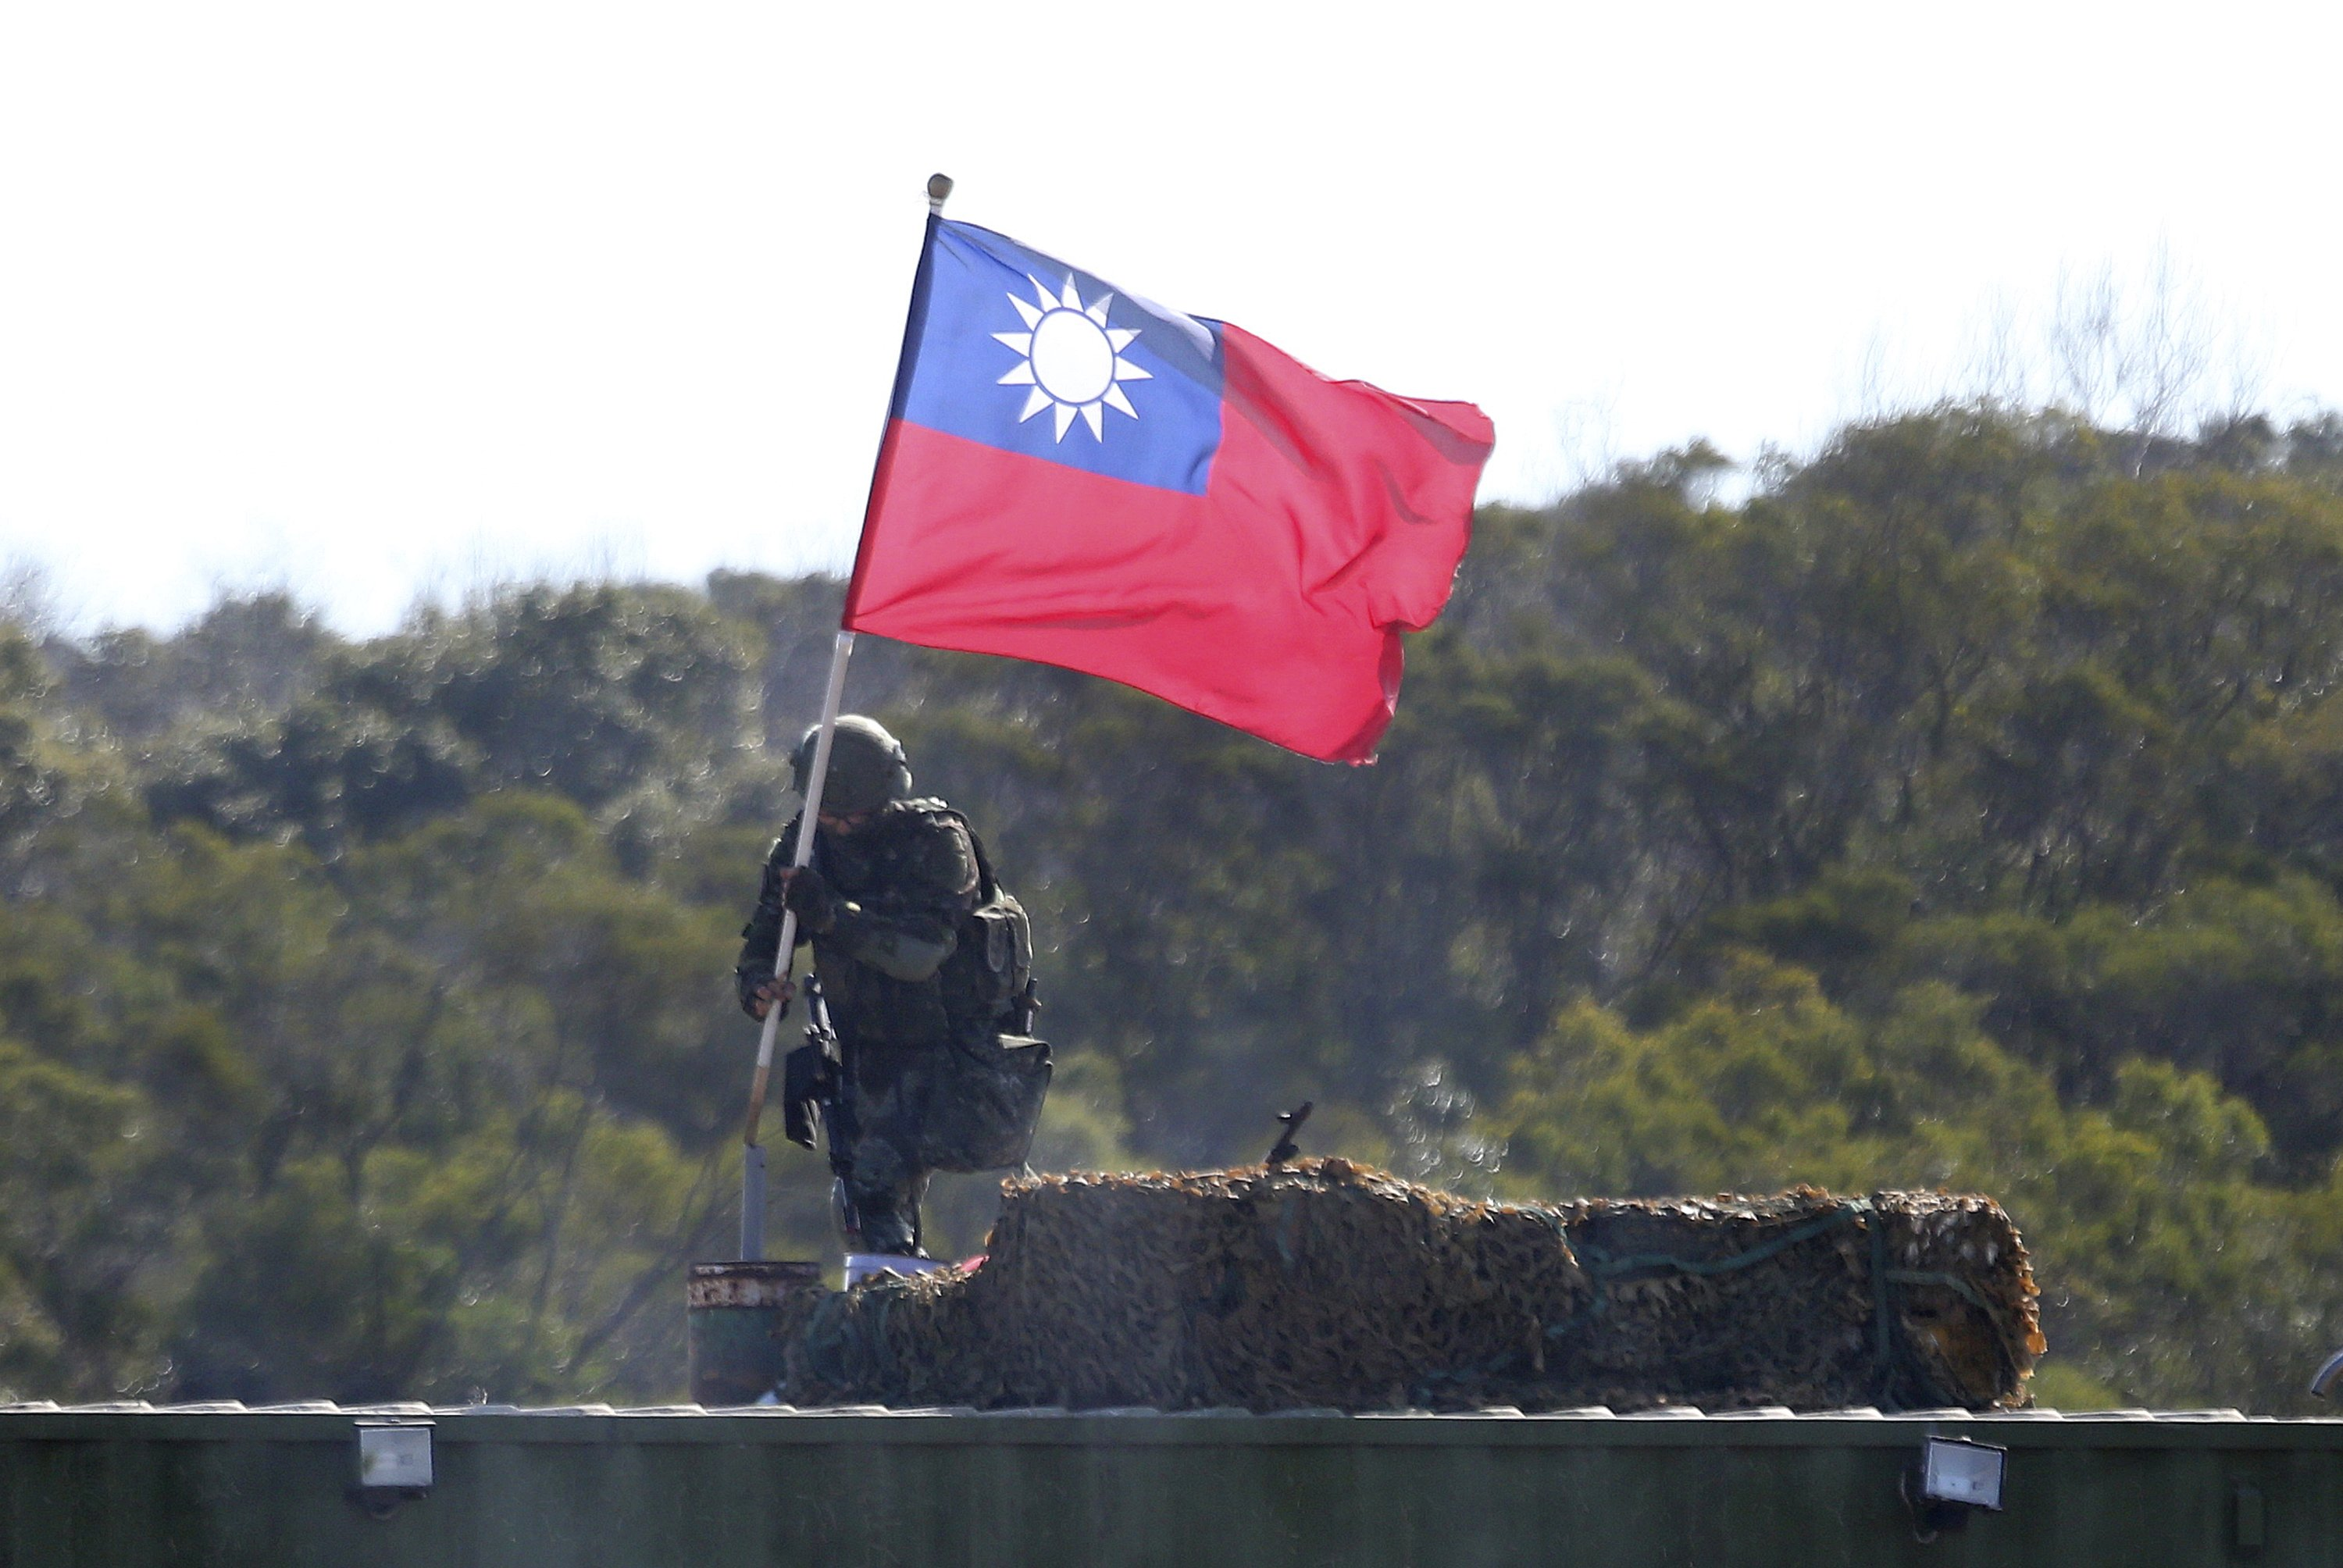 A soldier holds a Taiwanese national flag during a military exercise in Hsinchu County, northern Taiwan, Jan. 19, 2021. (AP Photo)